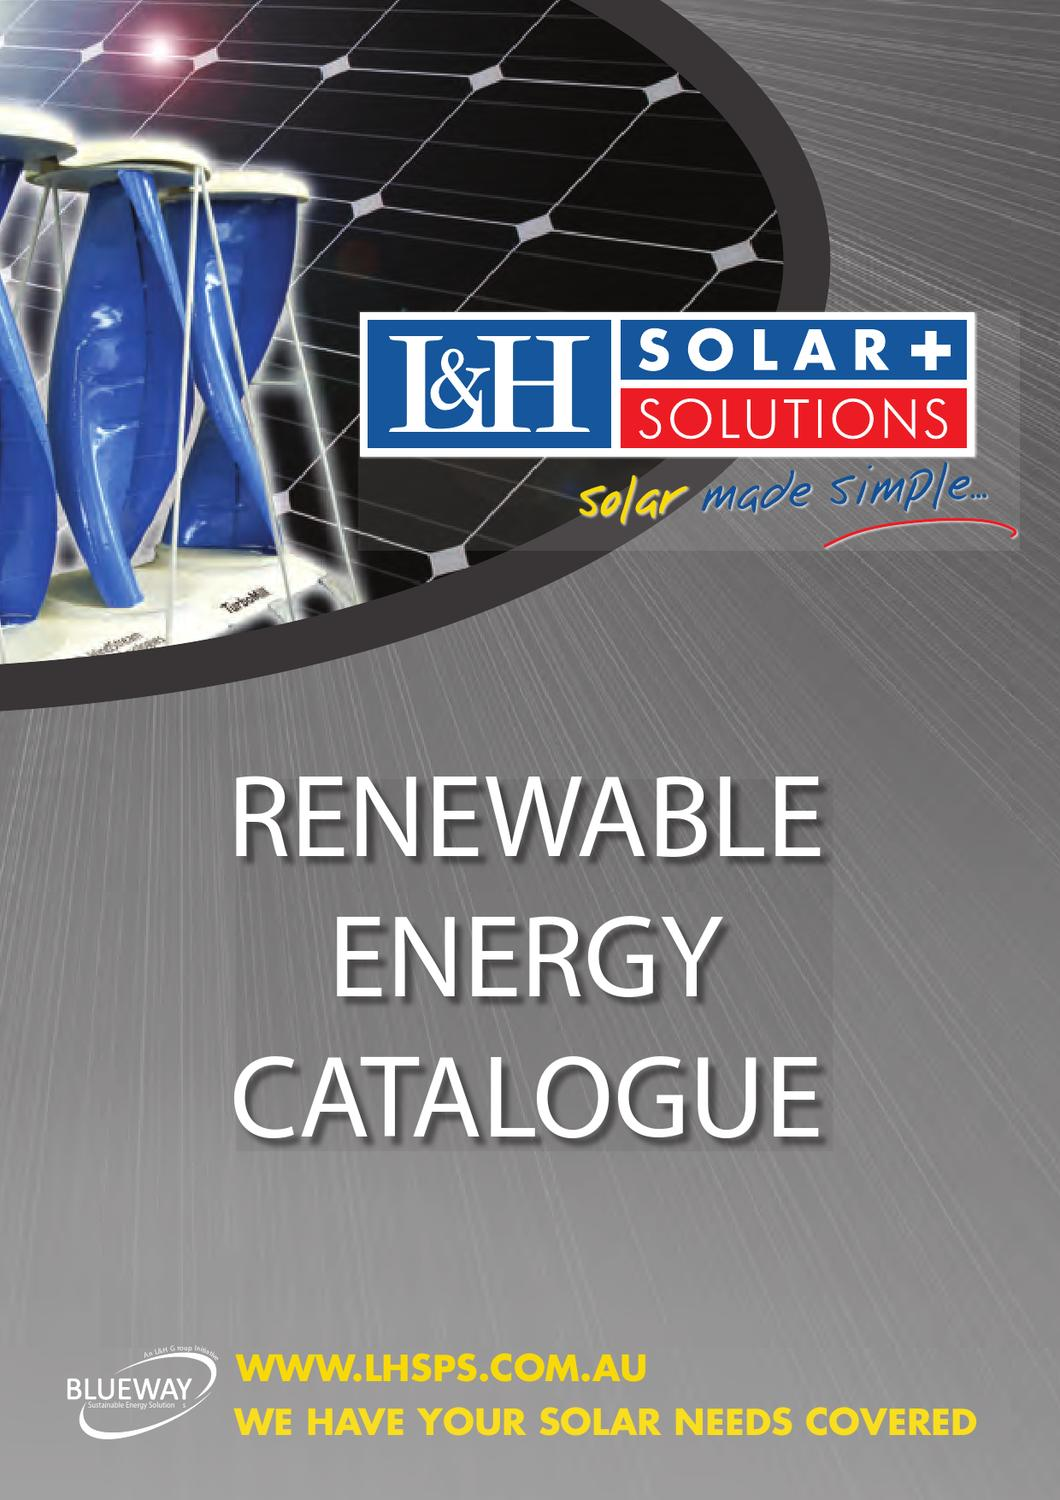 Lh Solar Catalogue By Chris Bright Issuu Labels Gtgt Circuit Board Laser Printer